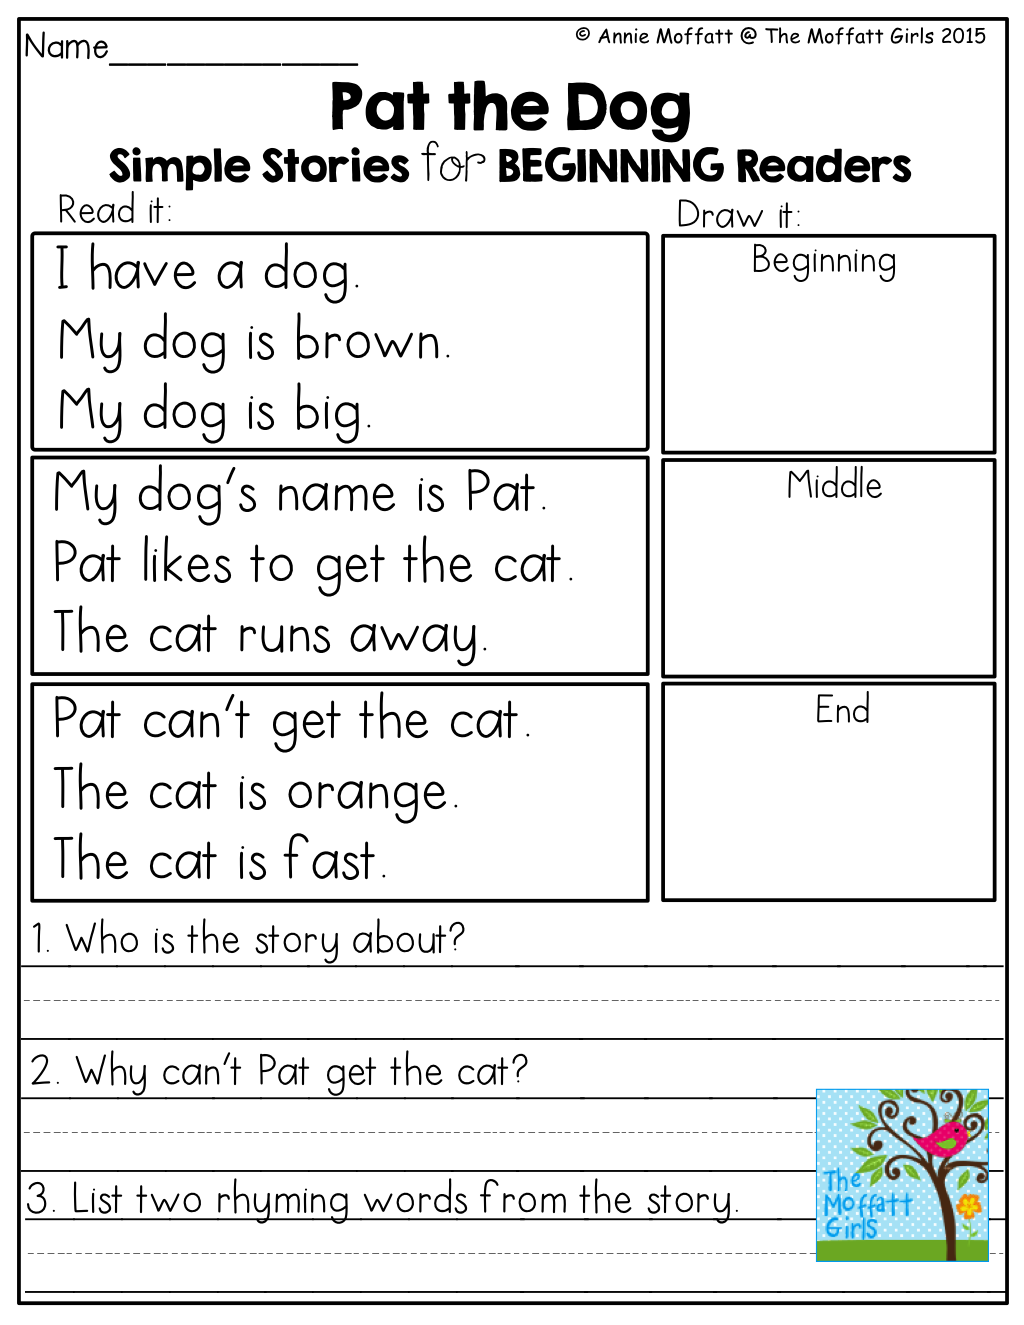 Simple Stories For Beginning Readers Read The Story And